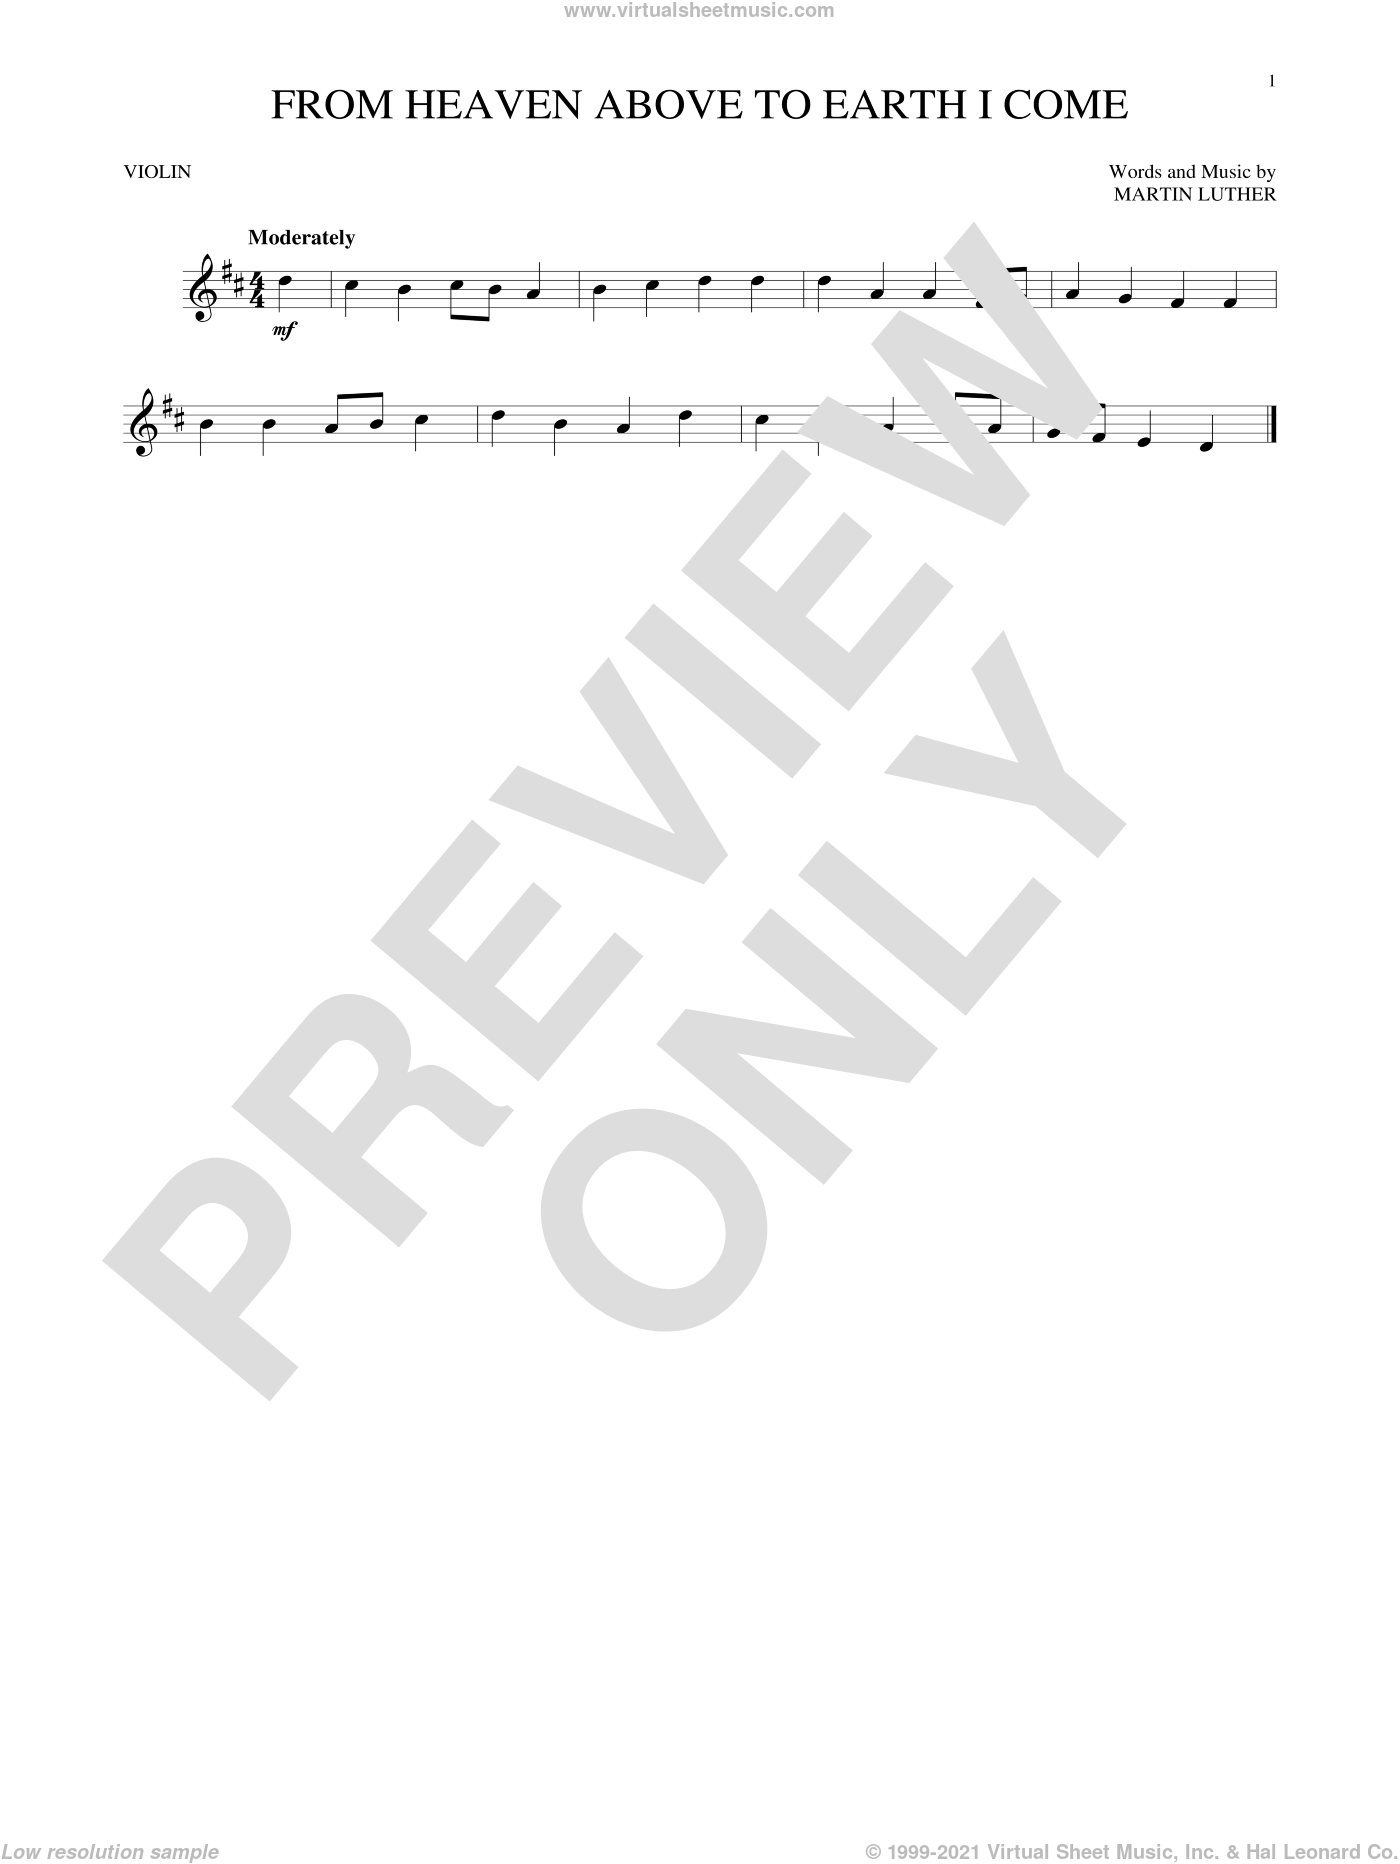 From Heaven Above To Earth I Come sheet music for violin solo by Martin Luther and Geistliche Lieder. Score Image Preview.